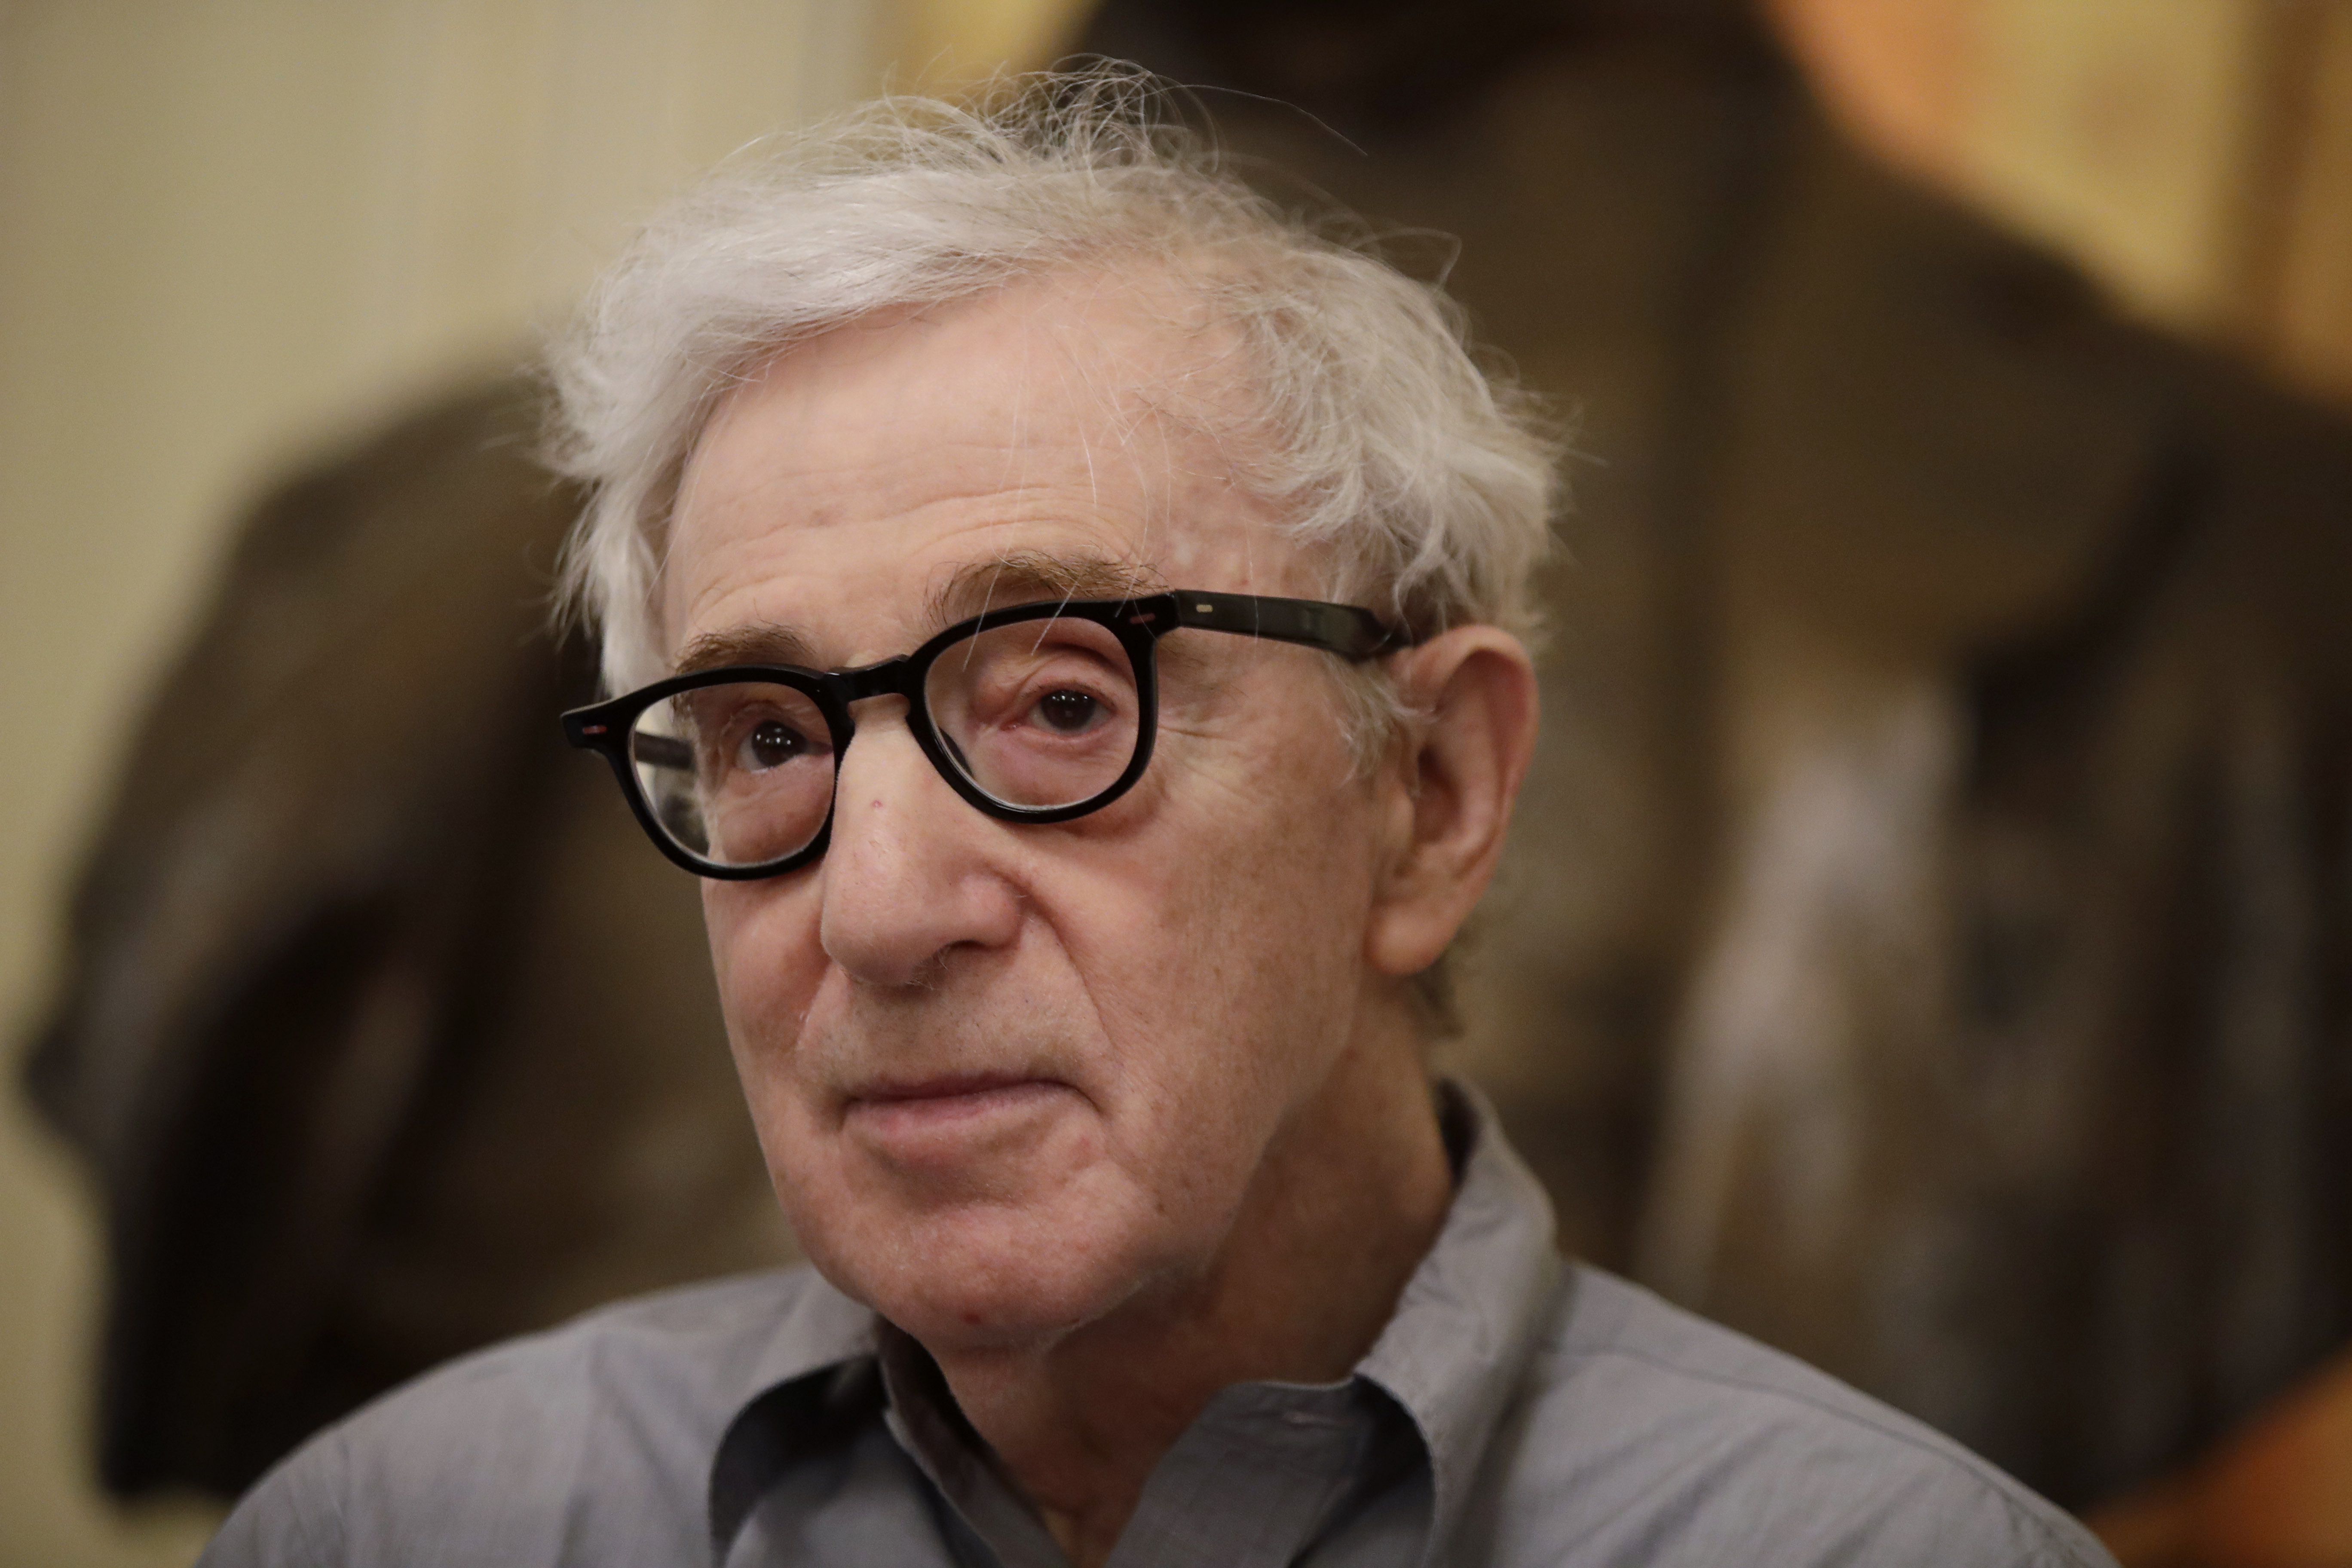 , Ronan Farrow Just Helped 'Catch and Kill' Woody's Allen Memoir, Saubio Making Wealth